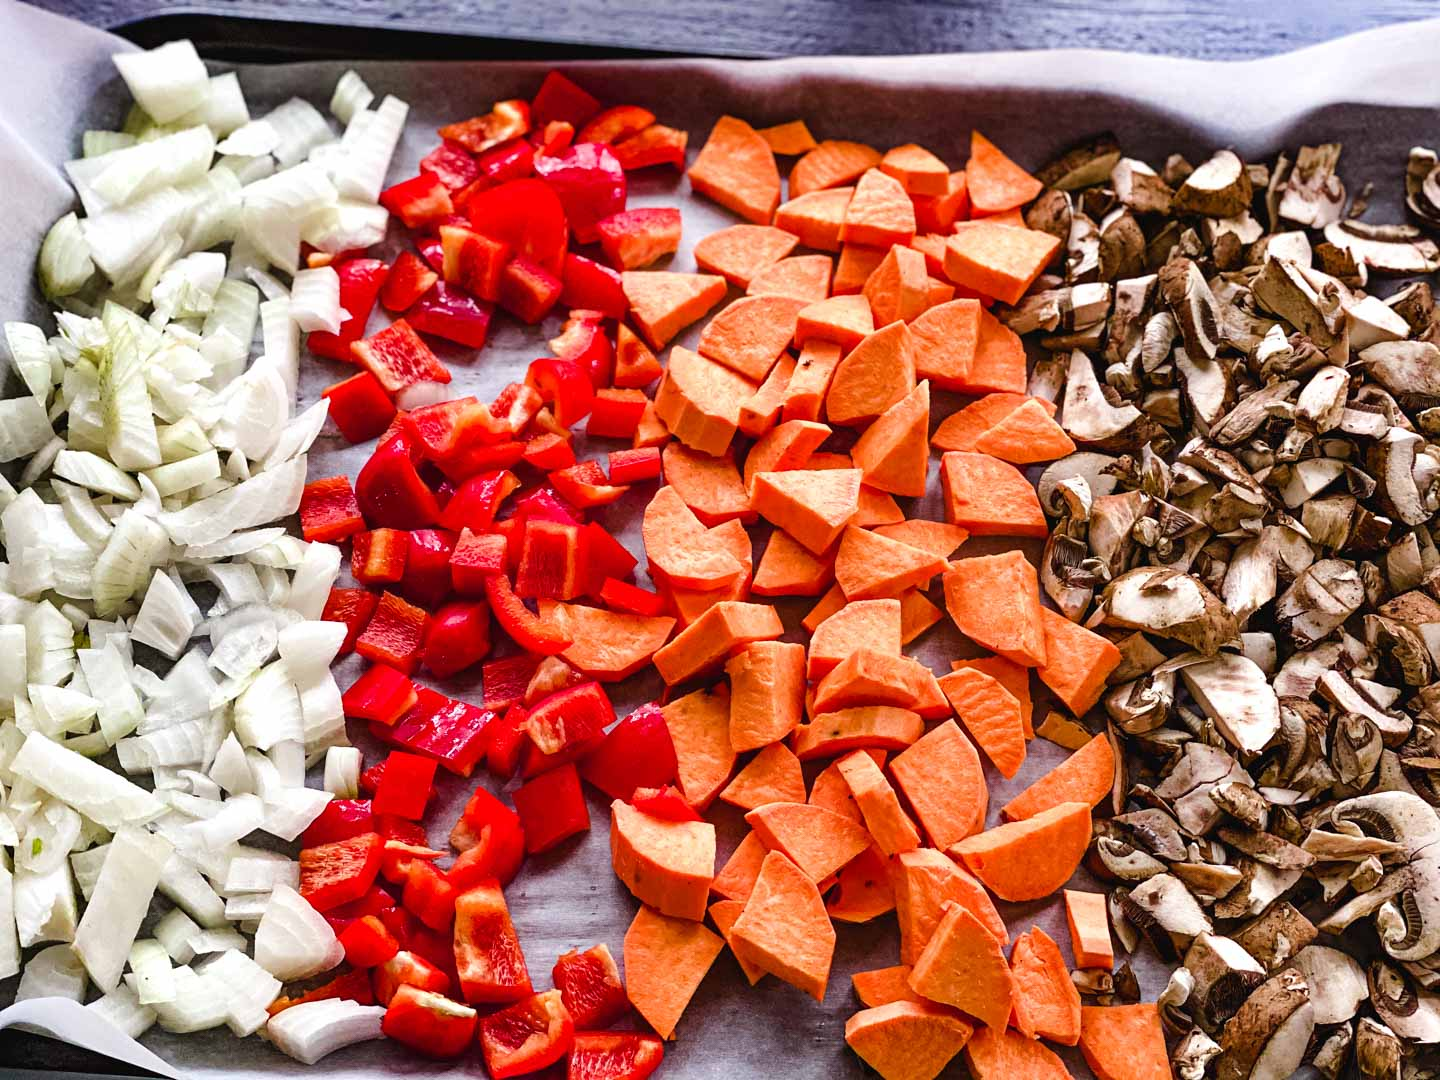 onions, red peppers, sweet potato and mushrooms on a baking sheet